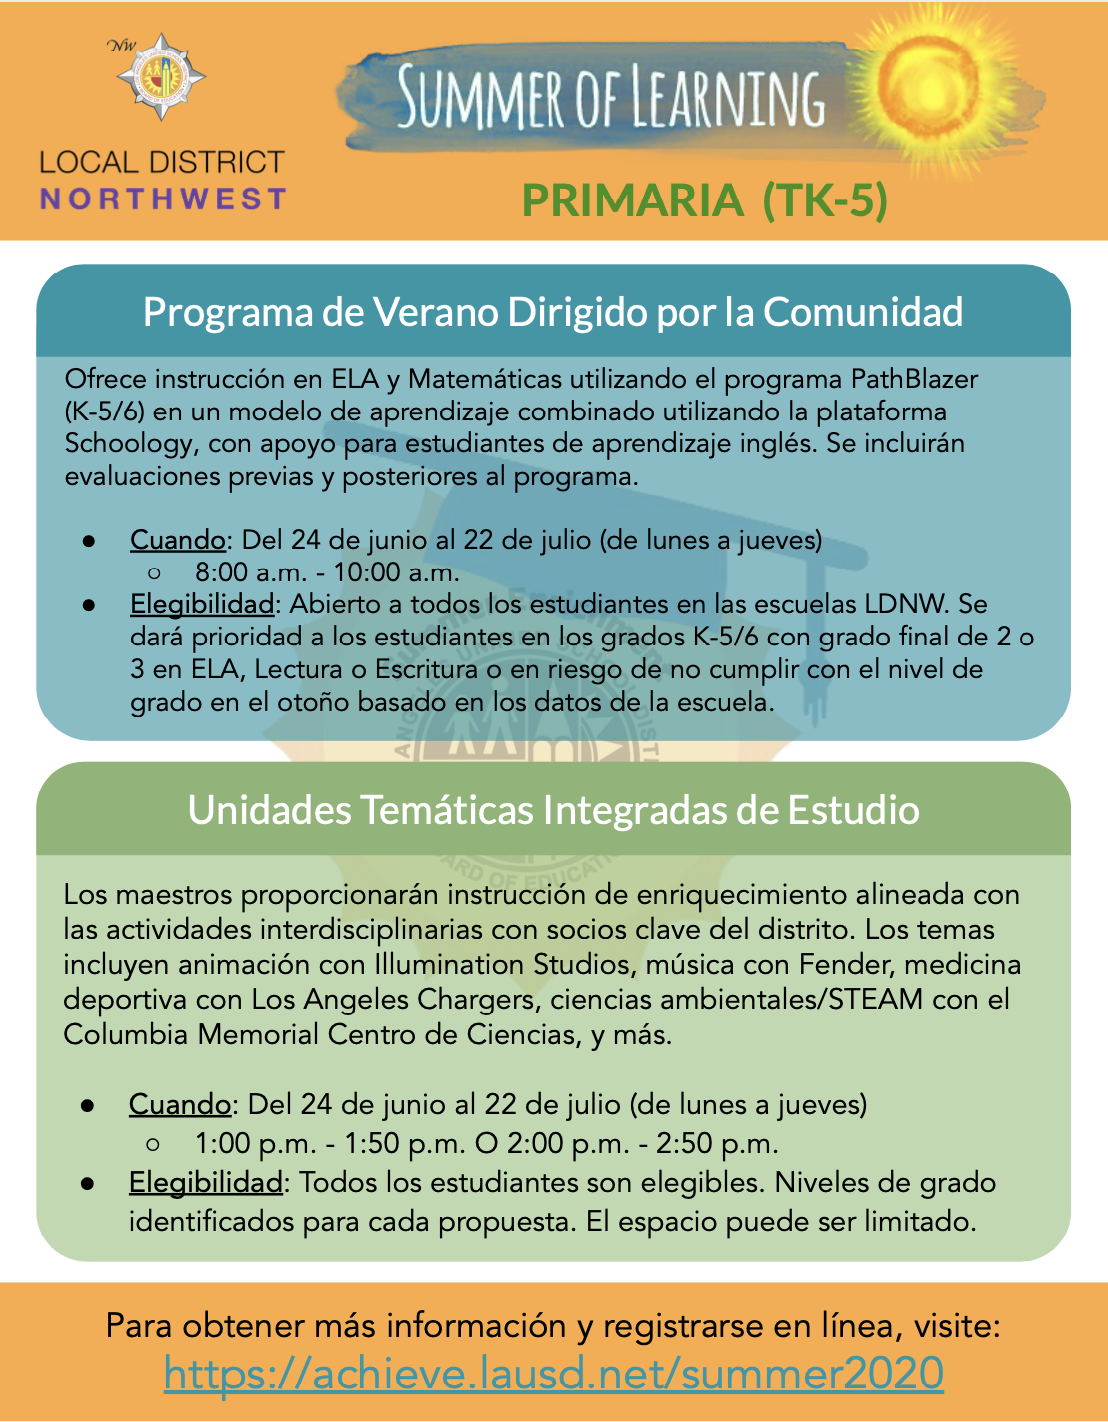 Flyer for Elementary (K - 5/6) Spanish